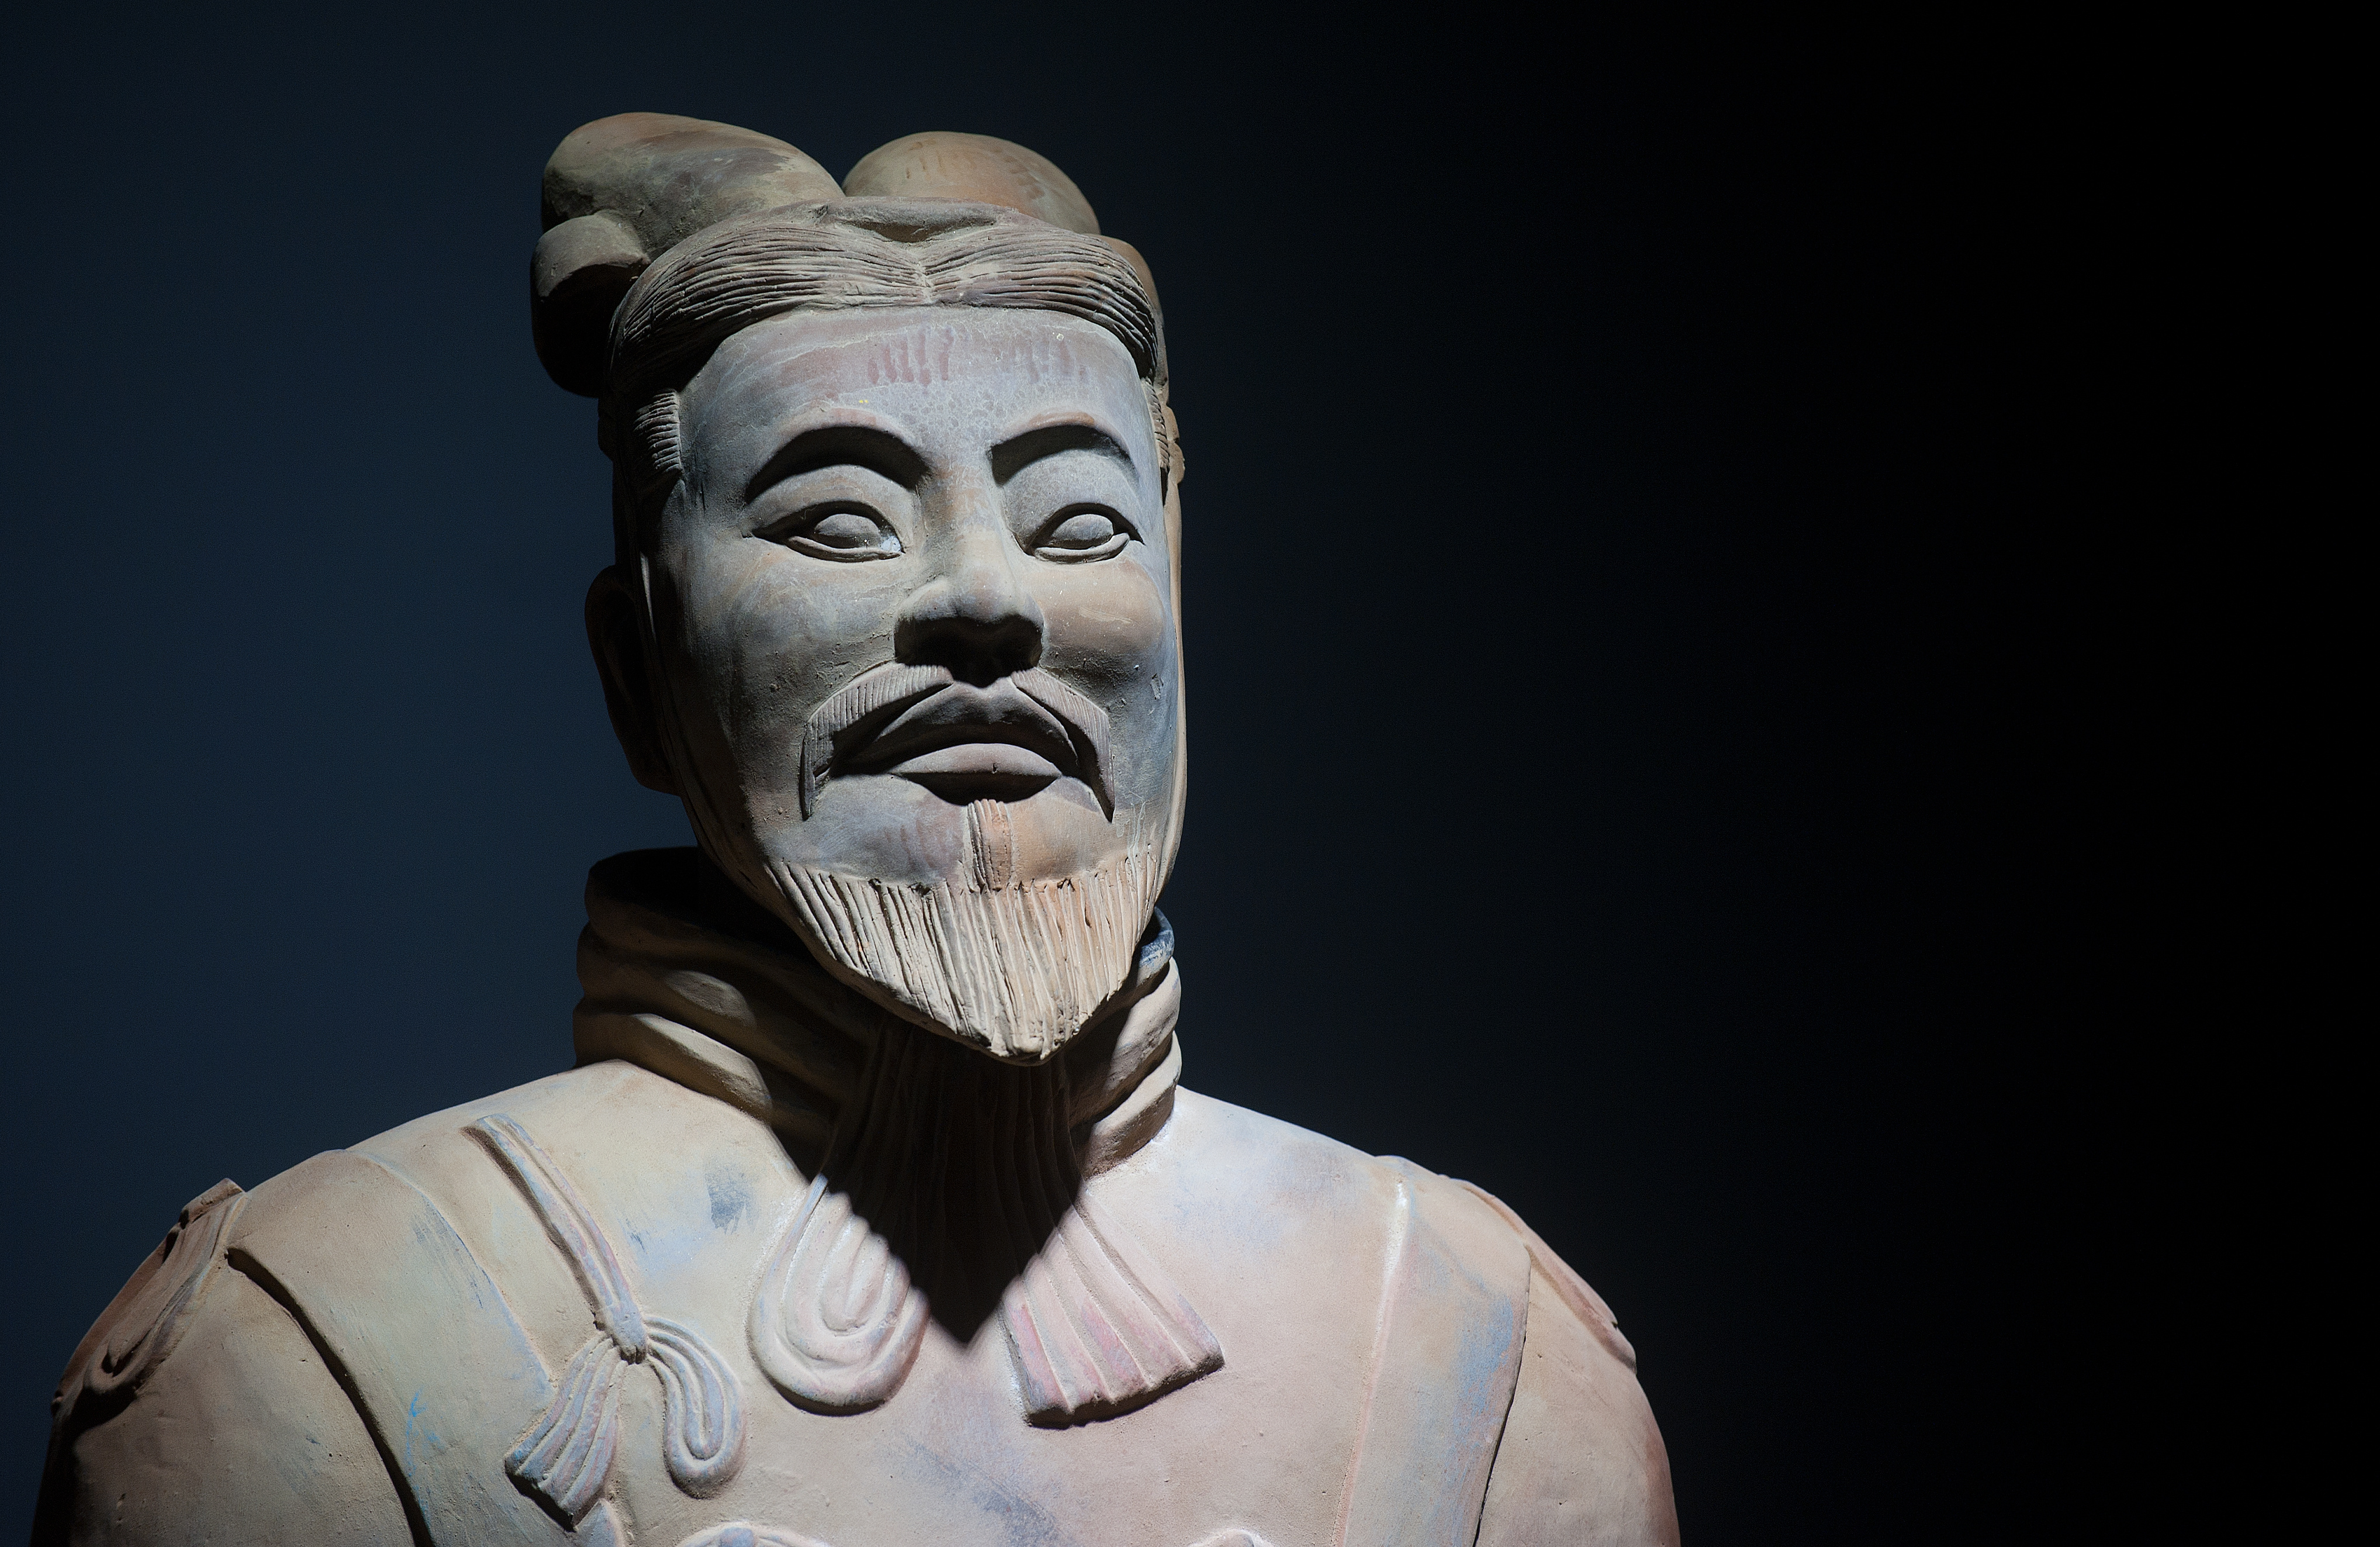 Scale Operations with Templates Like the Terracotta Army